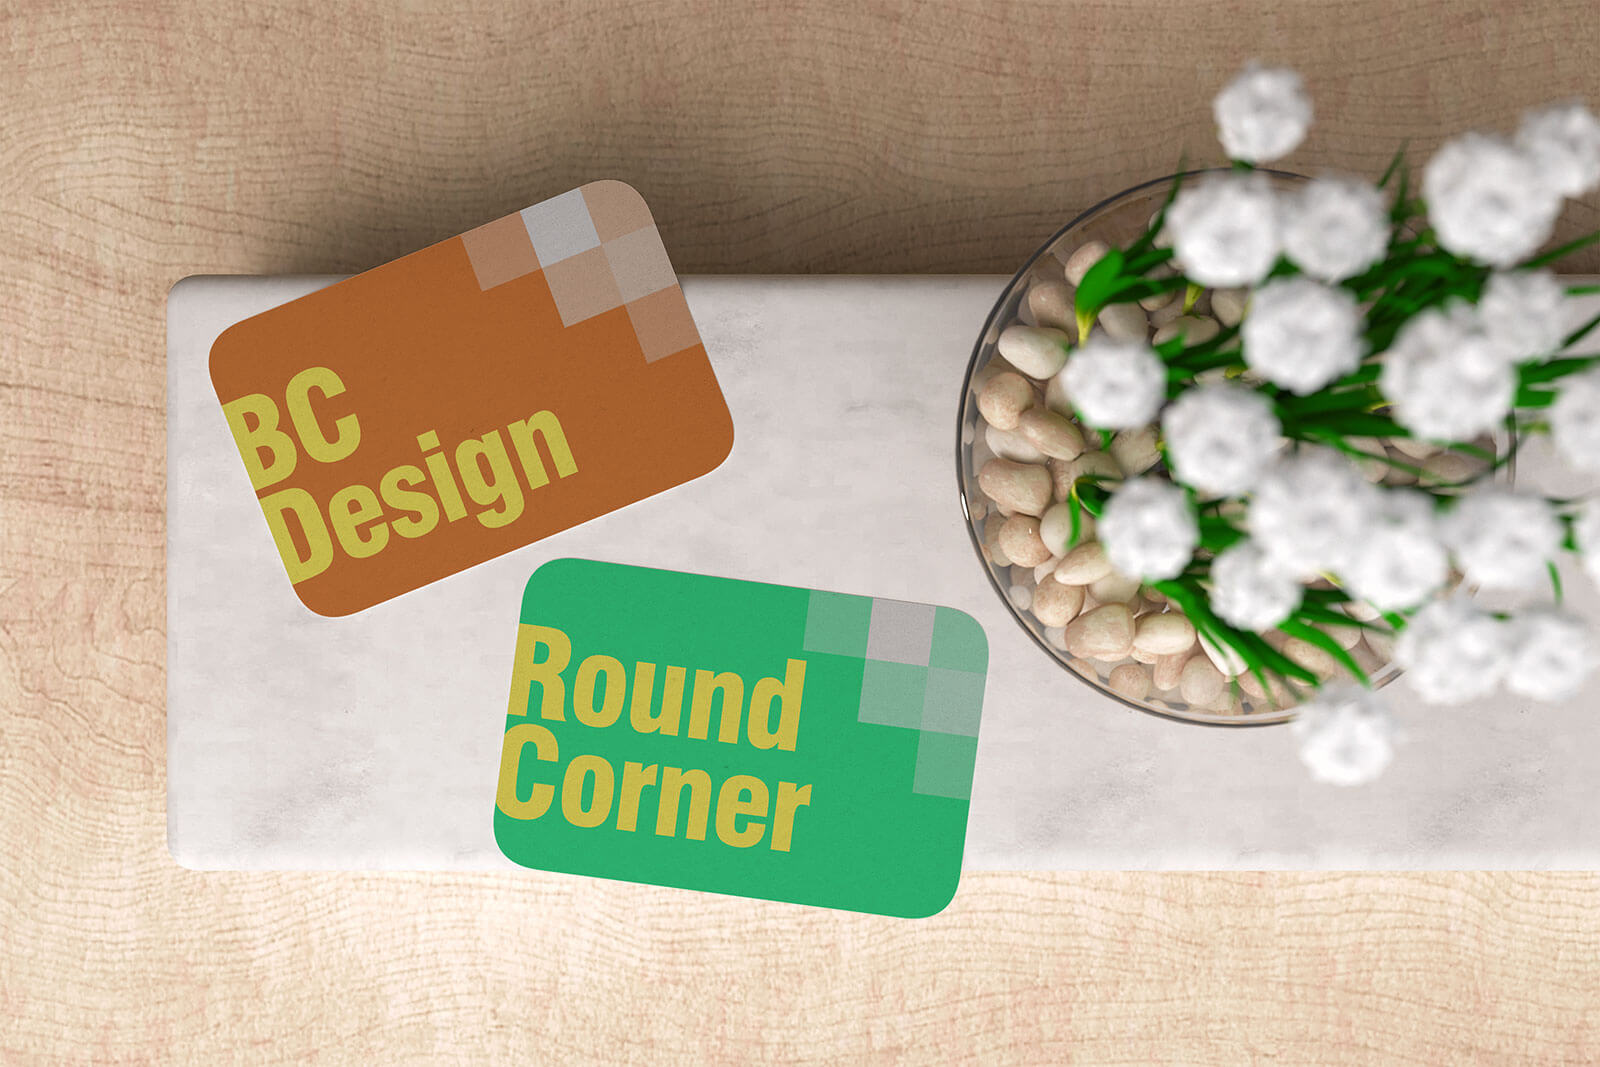 Free-Rounded-corner-Business-card-mockup-PSD